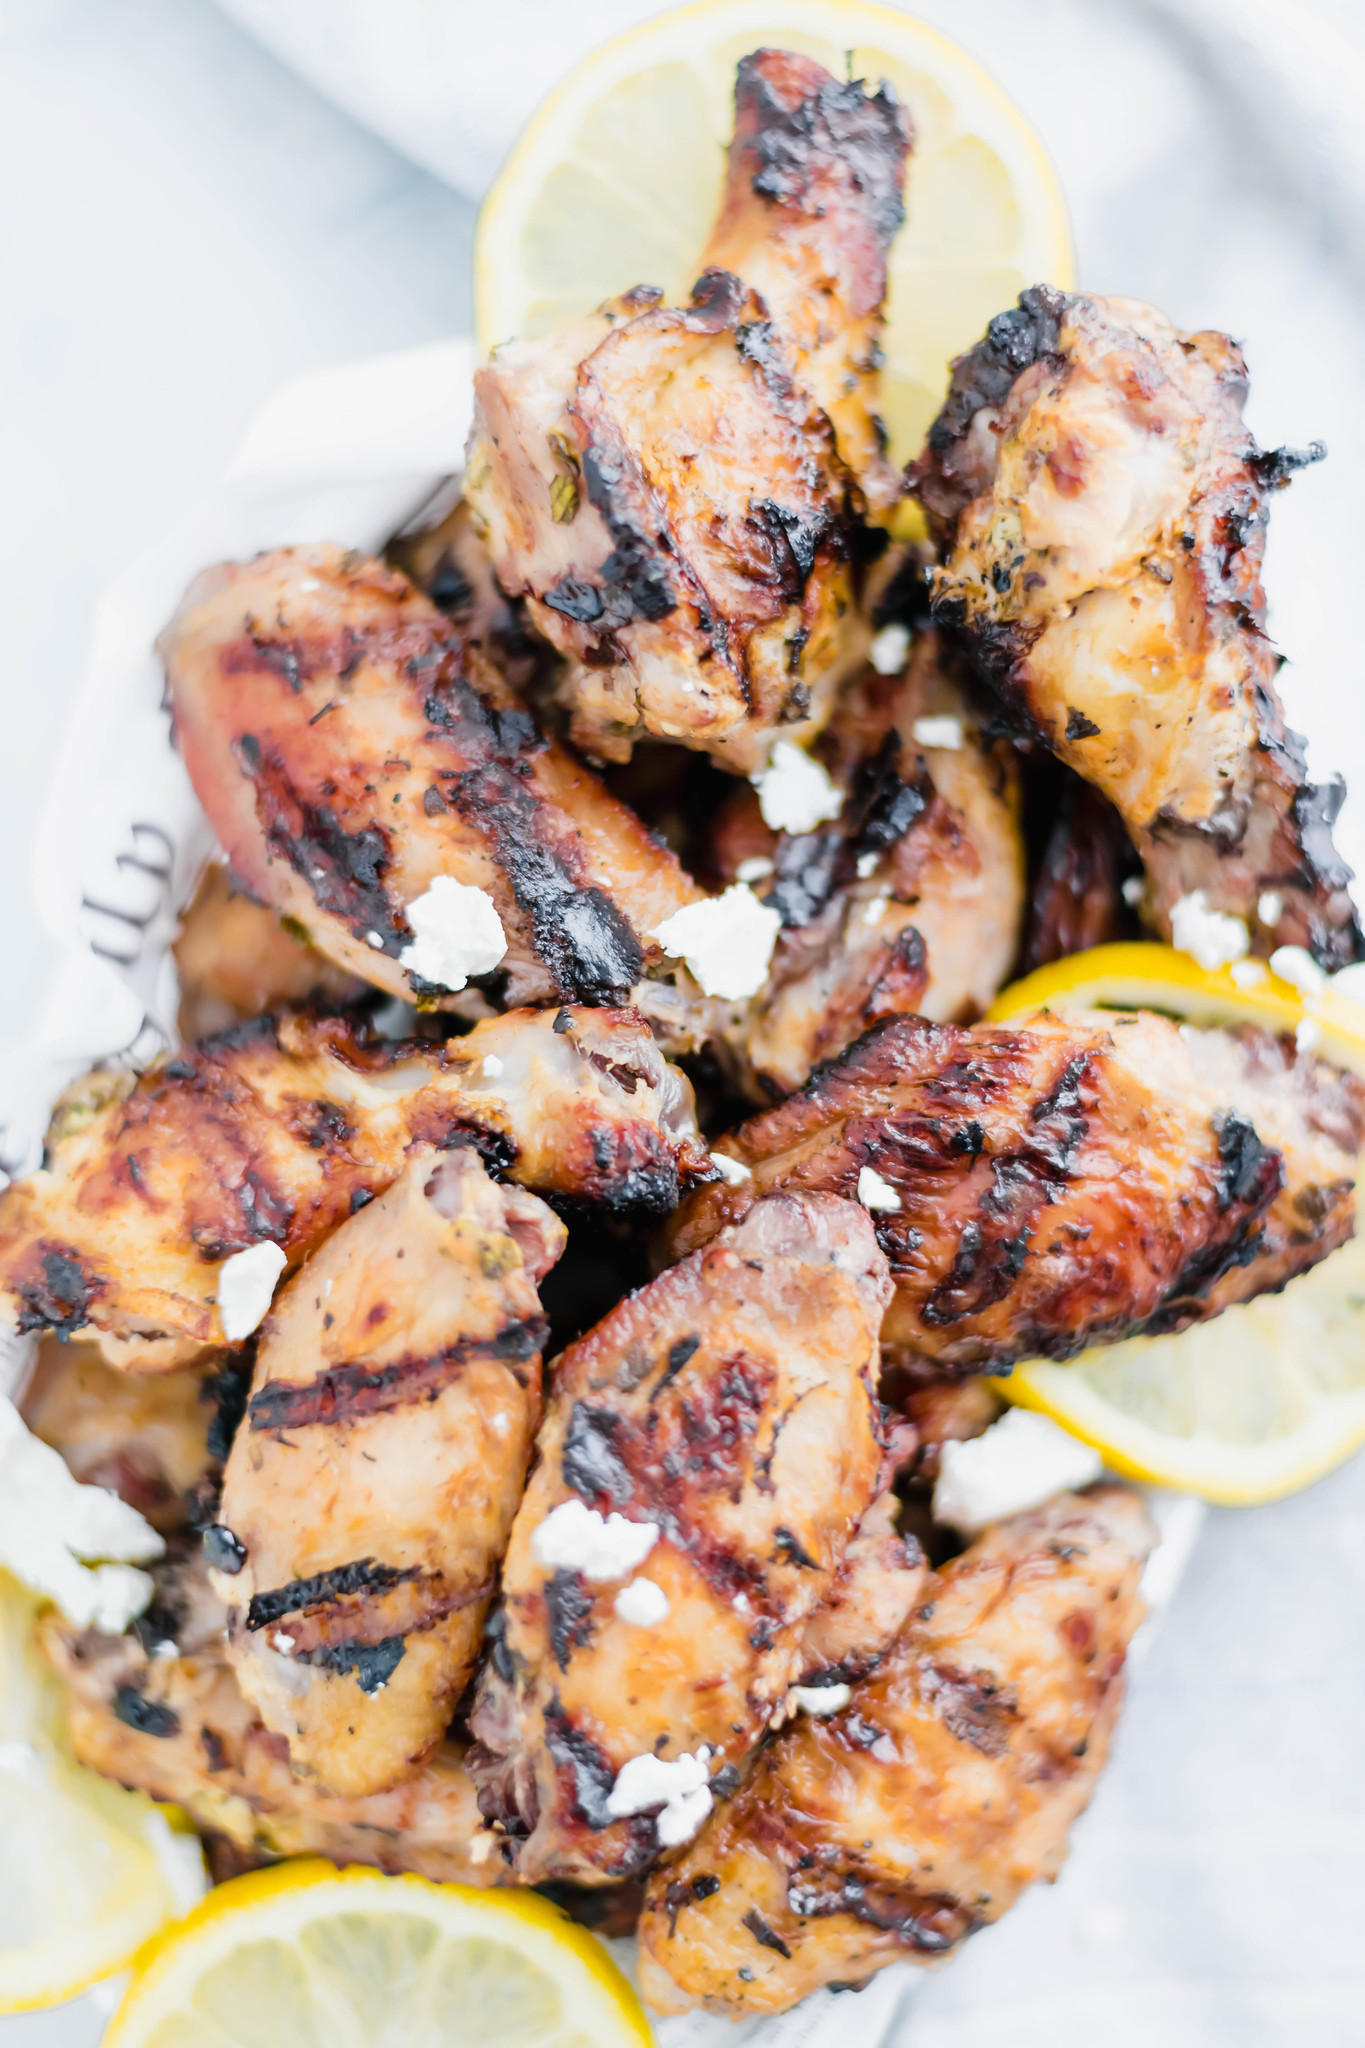 Don't let summer pass by without trying these grilled Greek Chicken Wings. Marinated in plain Greek yogurt, lemon juice and oregano, these wings are super juicy and bursting with bright flavor.